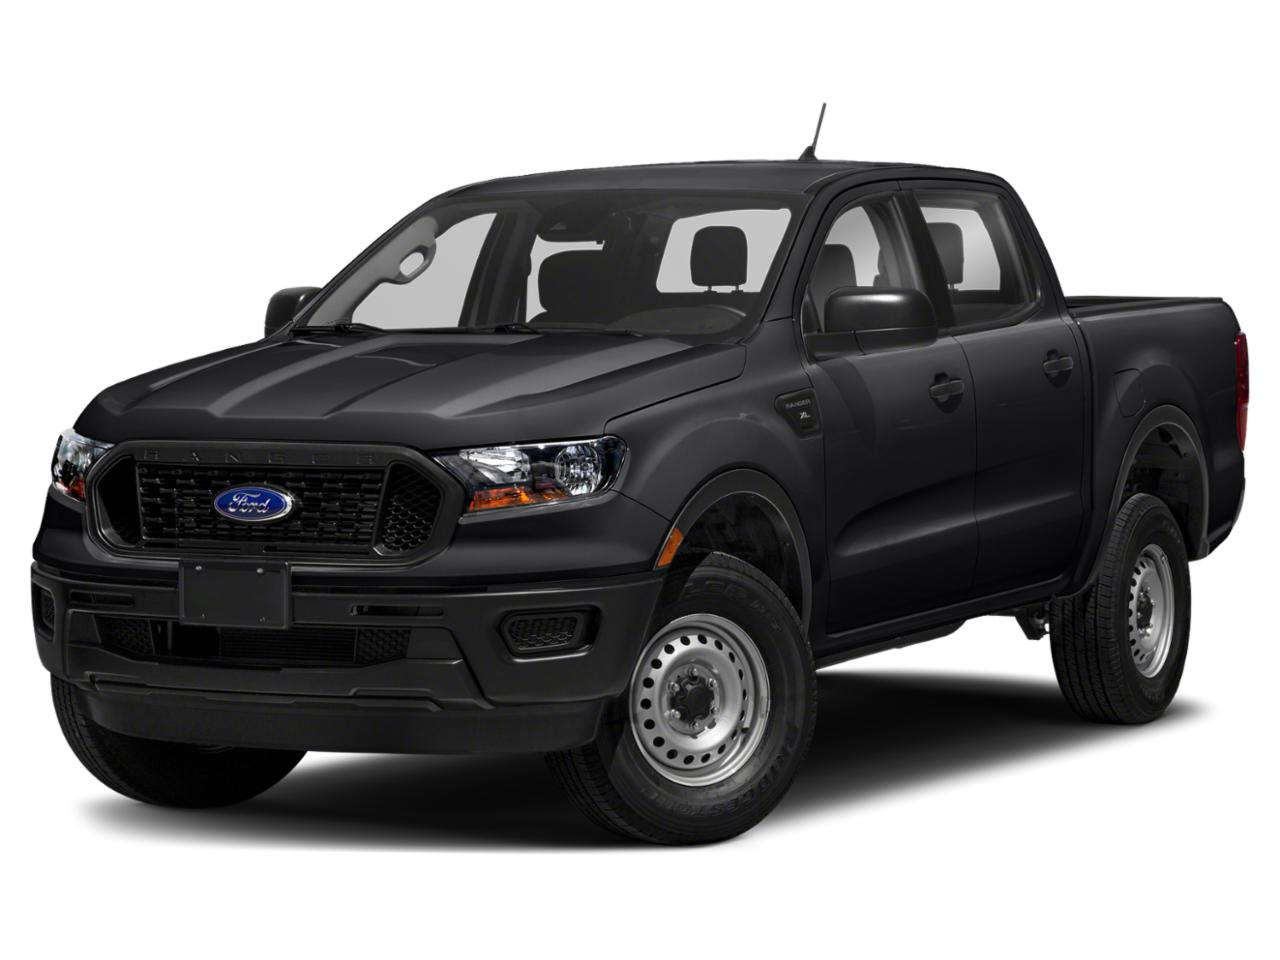 2020 Ford Ranger XL Crew Cab Pickup Slide